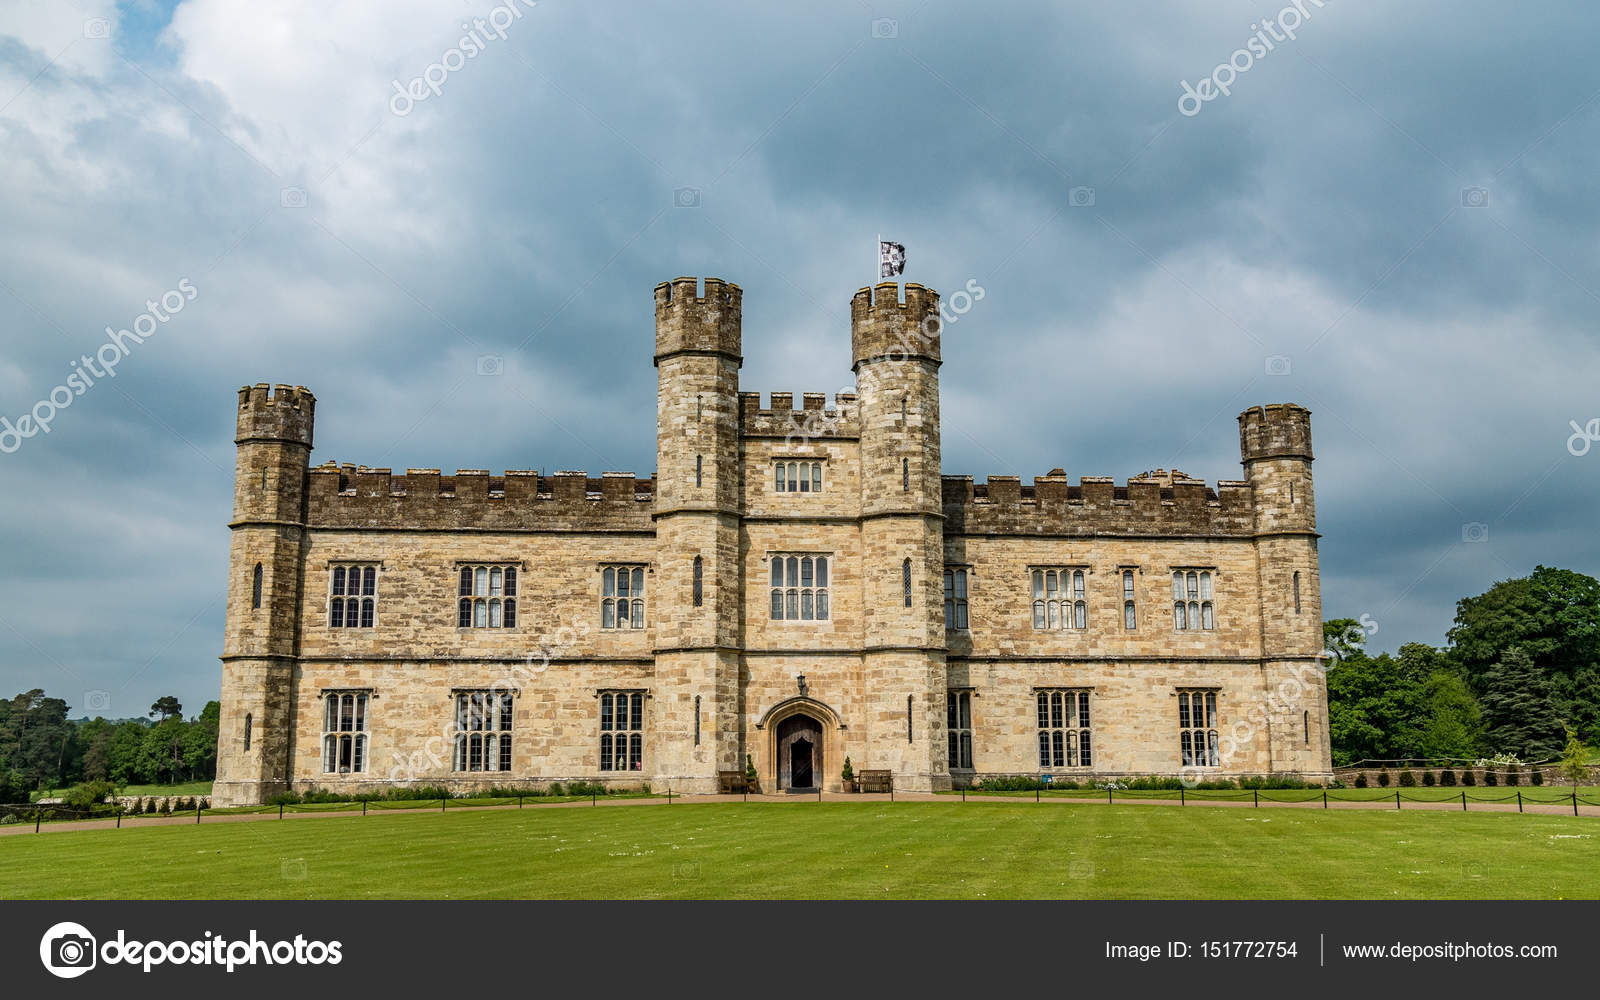 A Moated Medieval Castle In England Stock Photo C Justin Time